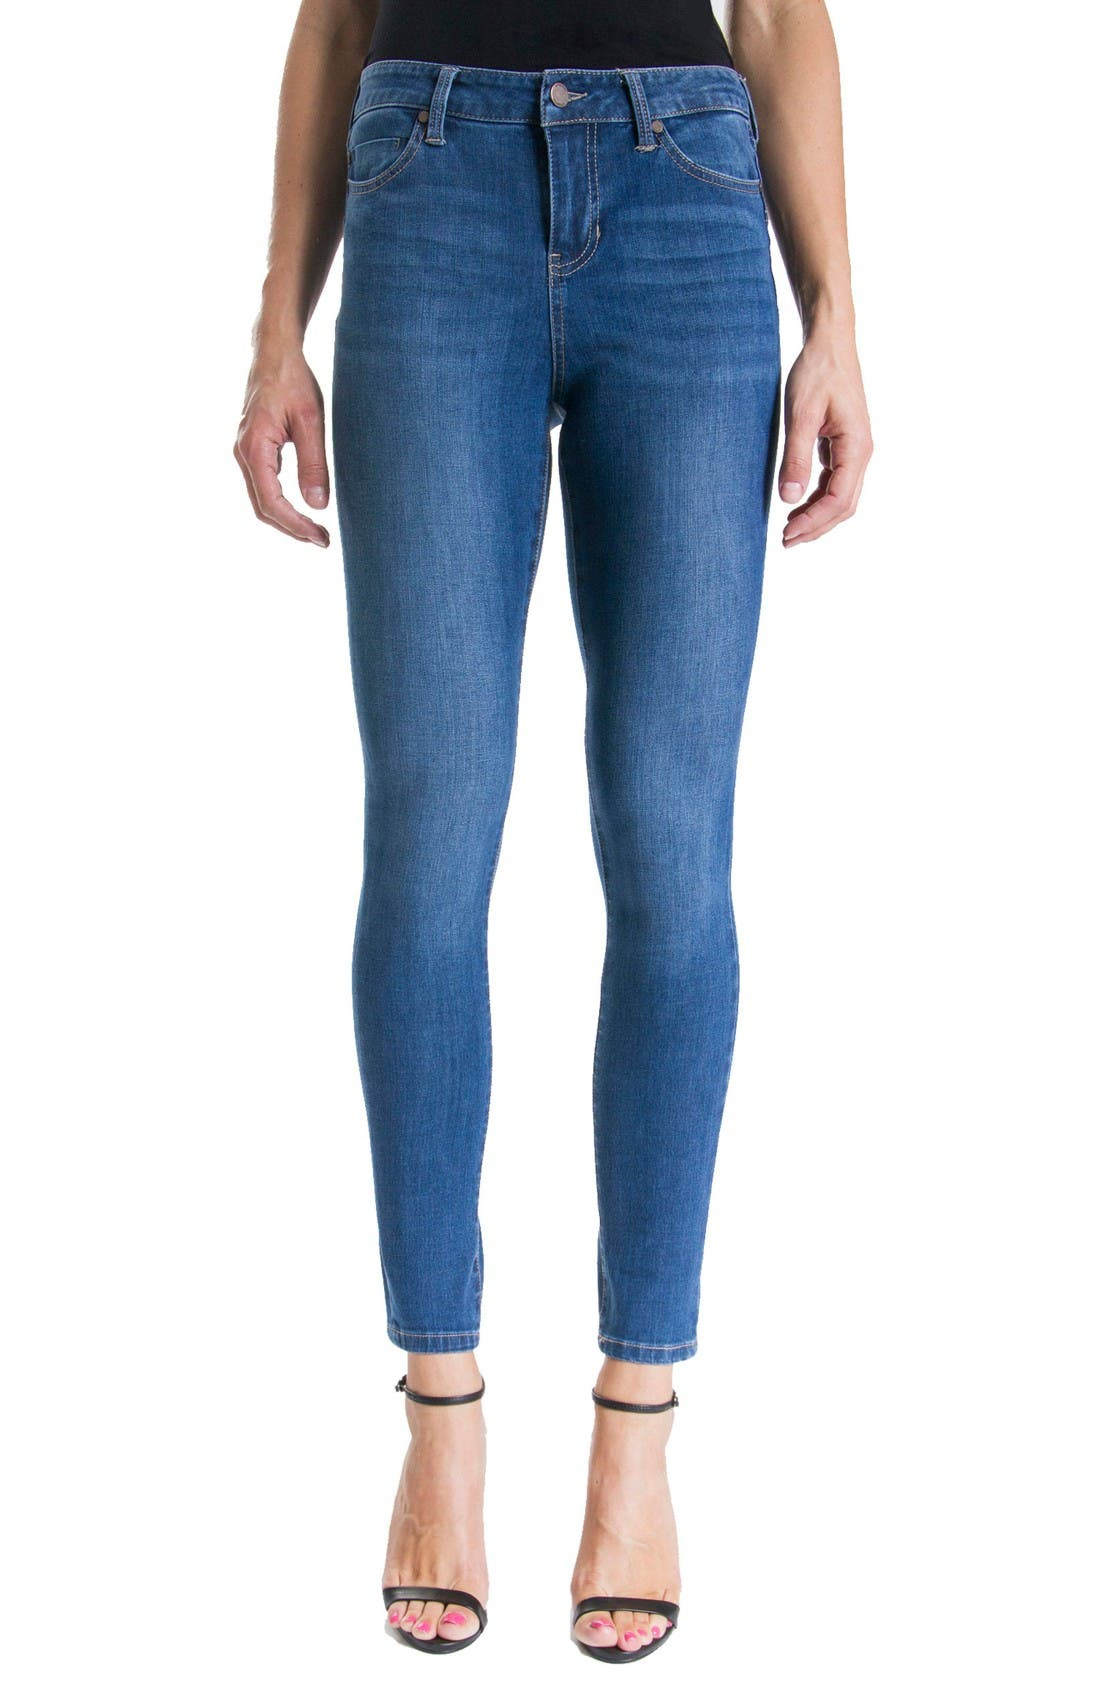 LIVERPOOL JEANS COMPANY Piper Hugger Lift Sculpt Ankle